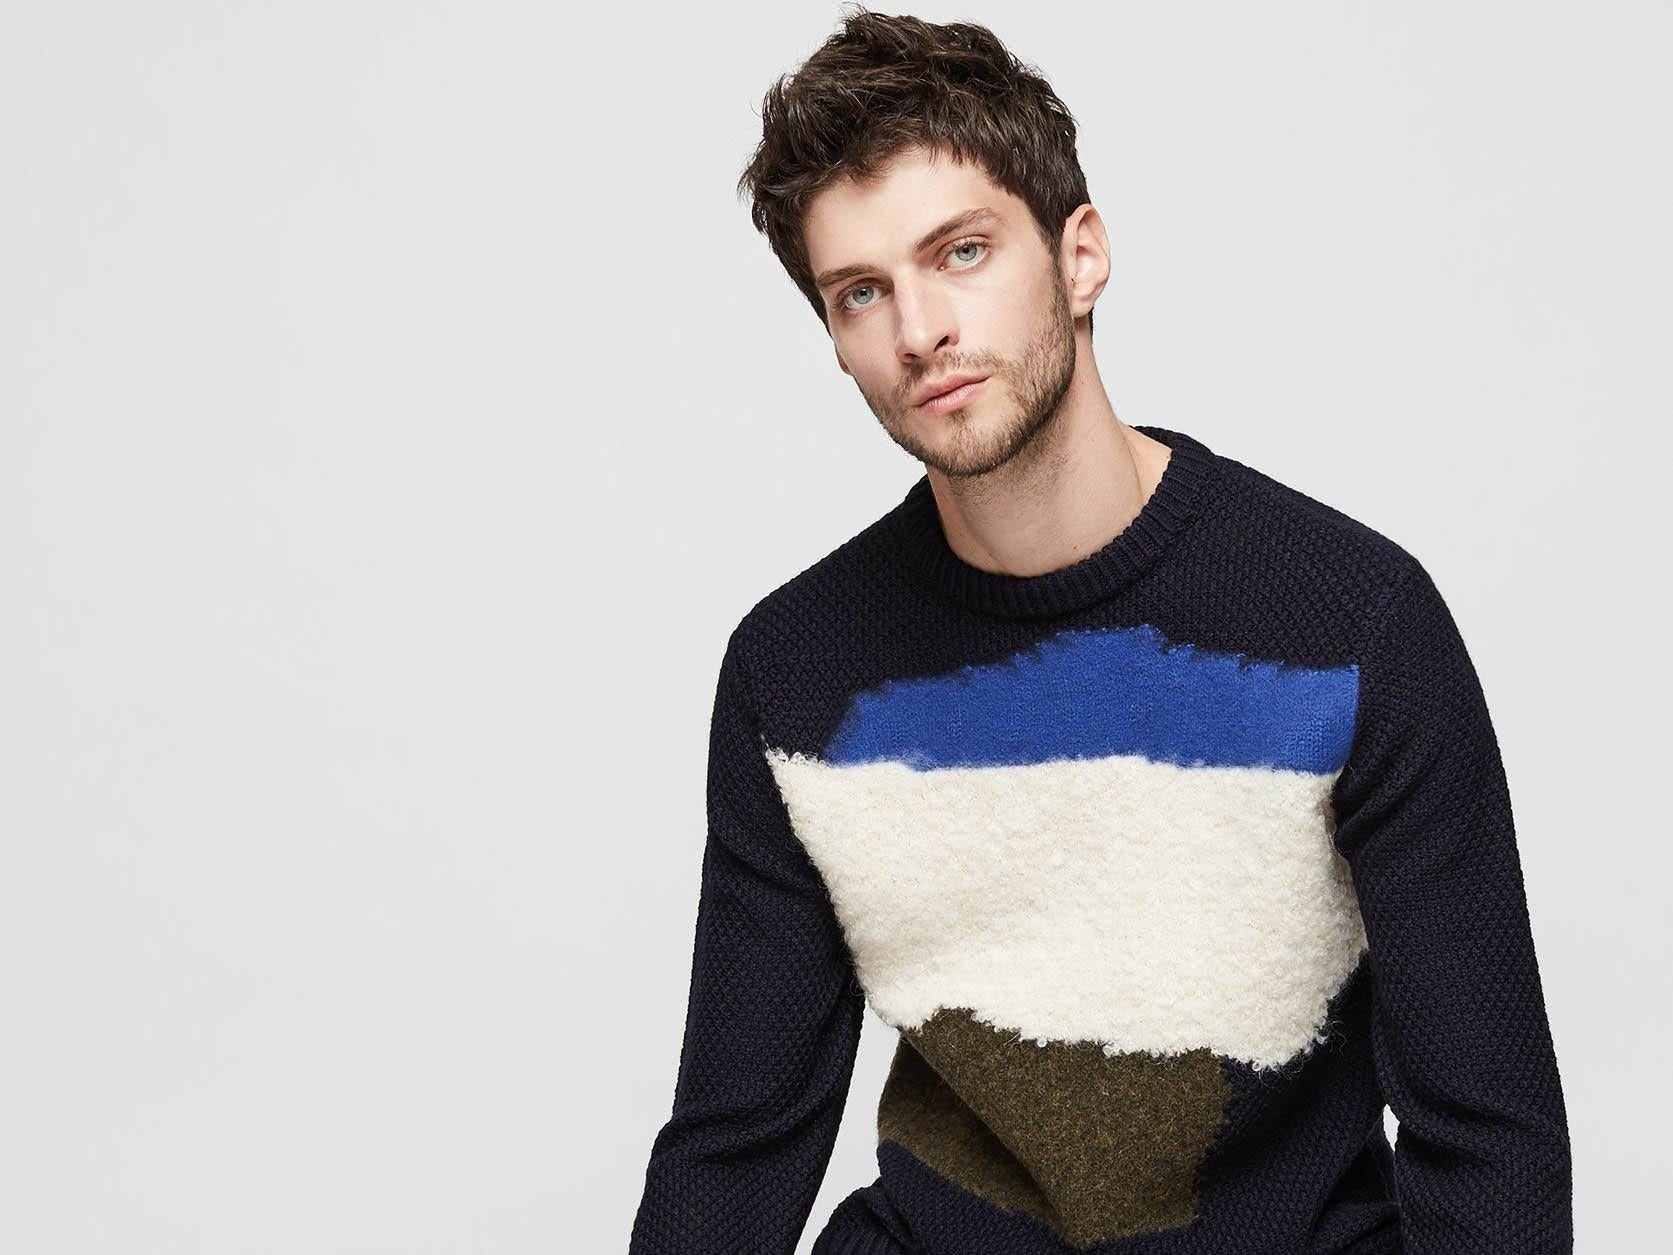 Stylish menswear alternatives to the Christmas jumper   The Independent